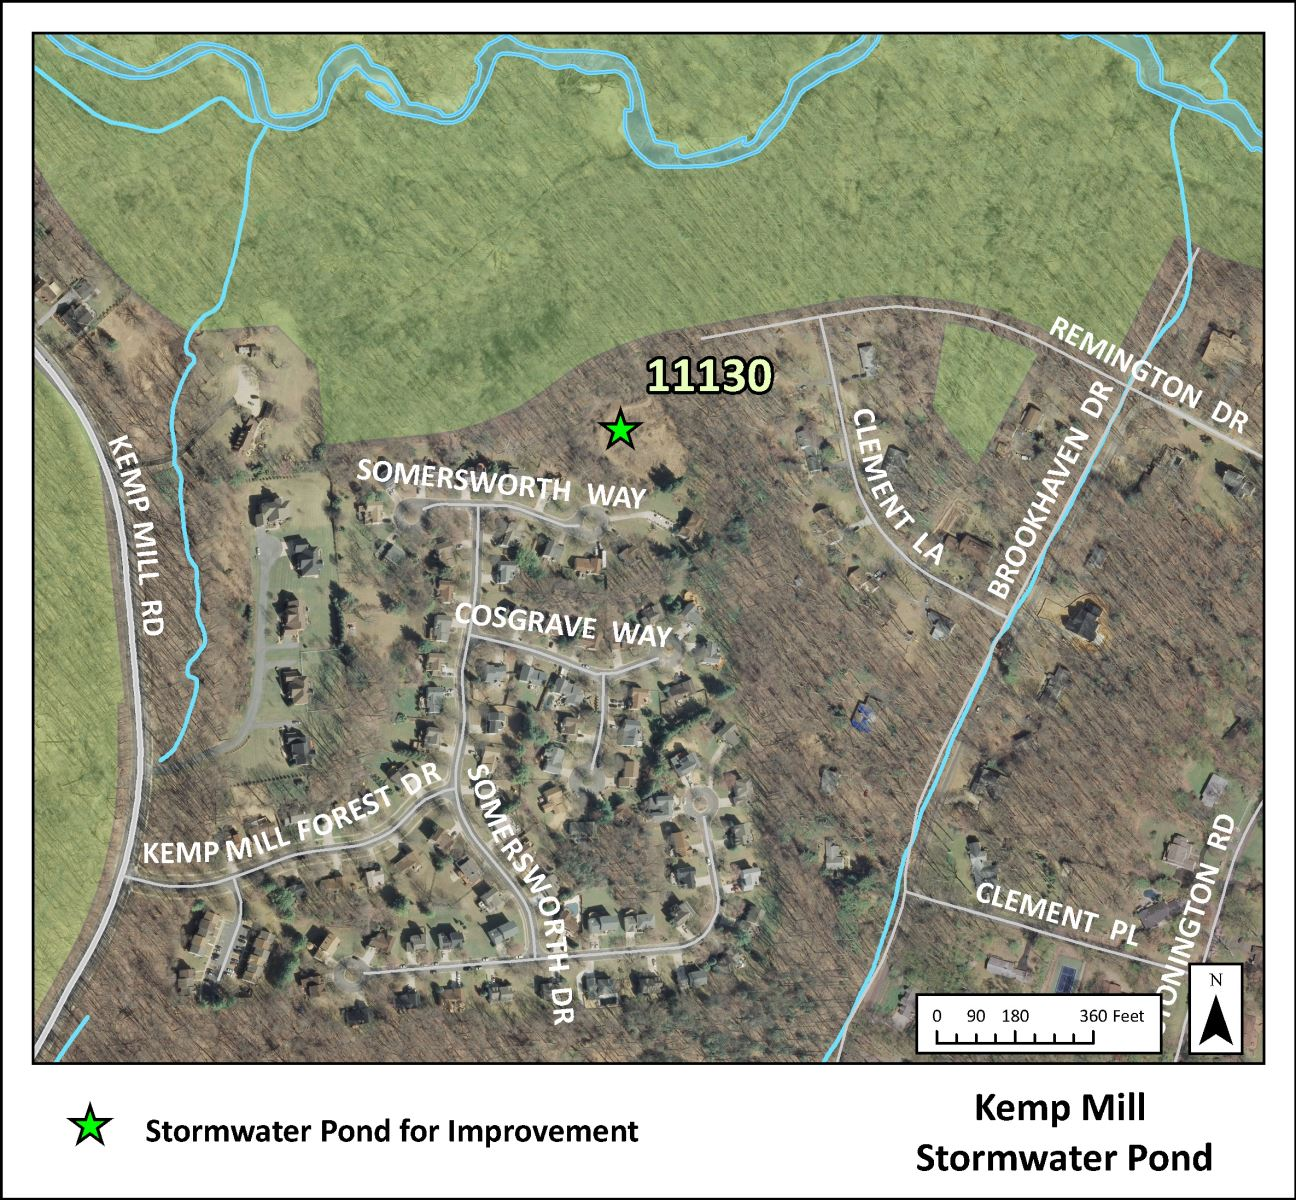 Image of Kemp Mill Stormwater Pond